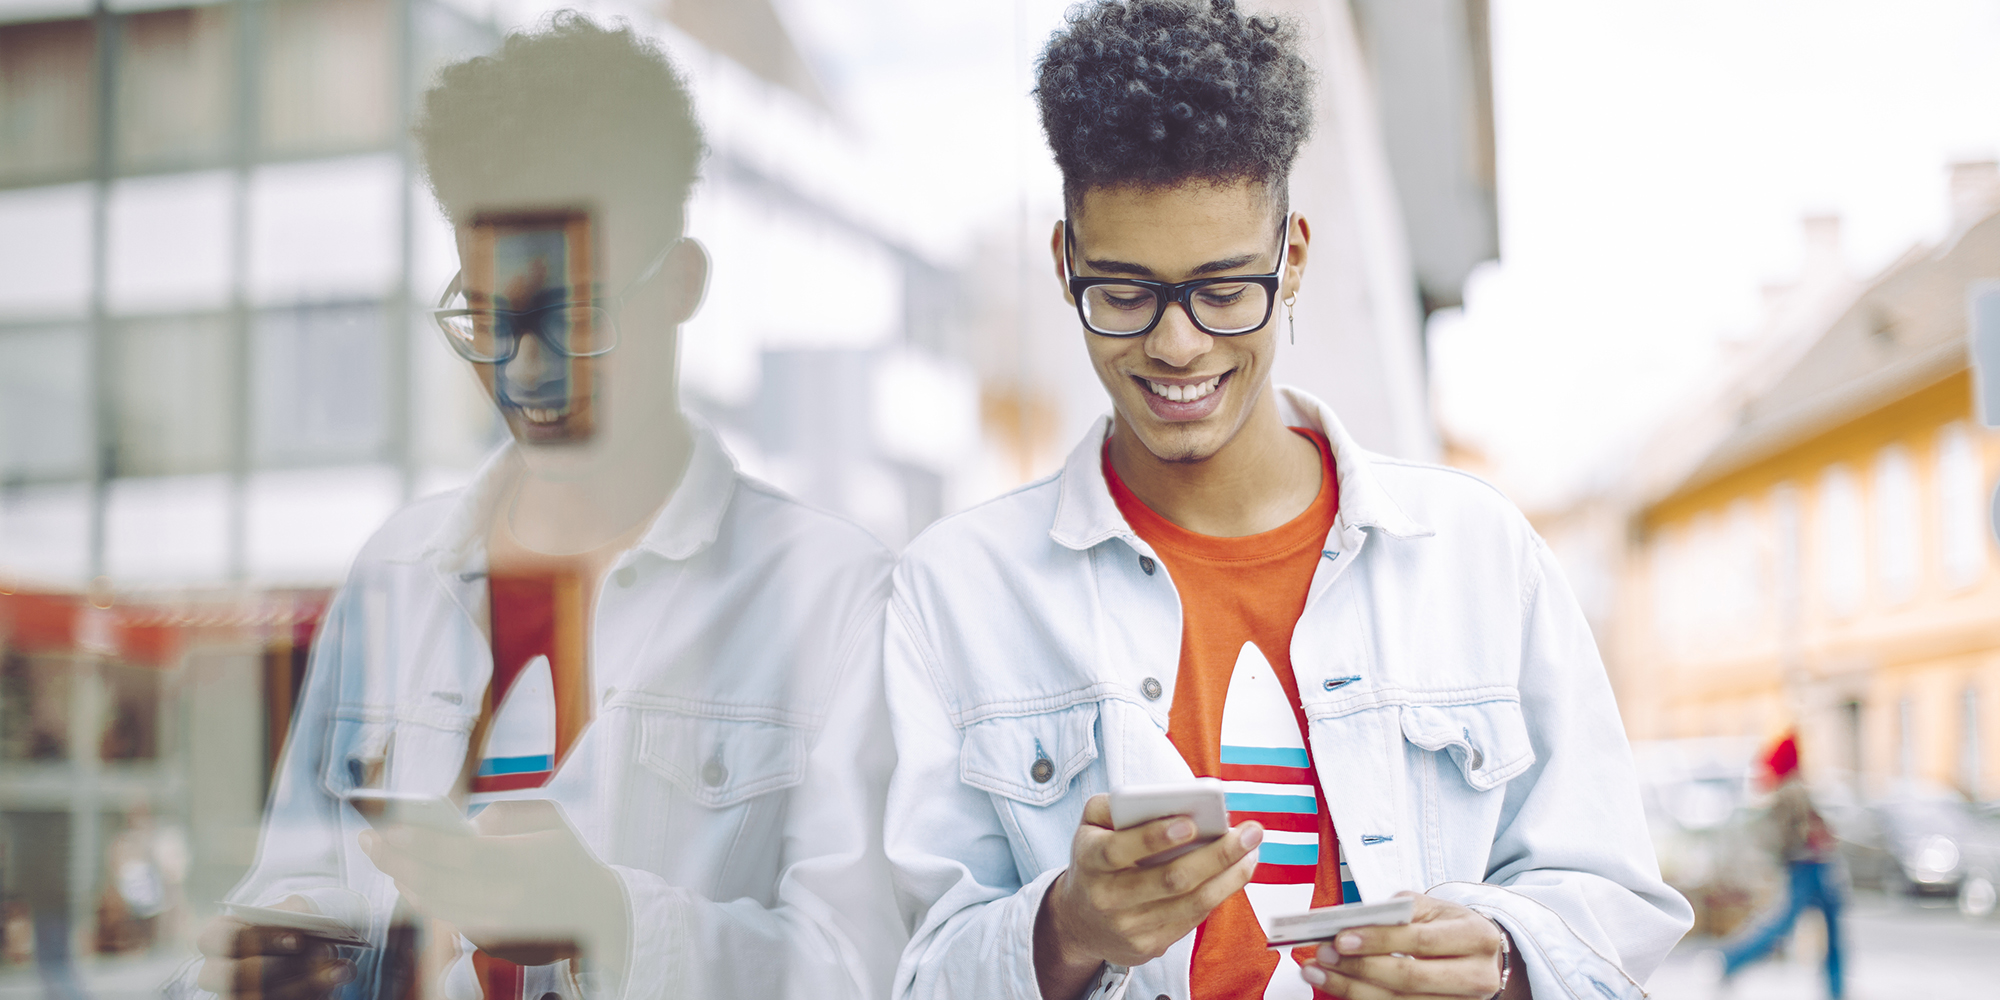 Young Man Smiling and Using Smartphone and Credit Card on City Street